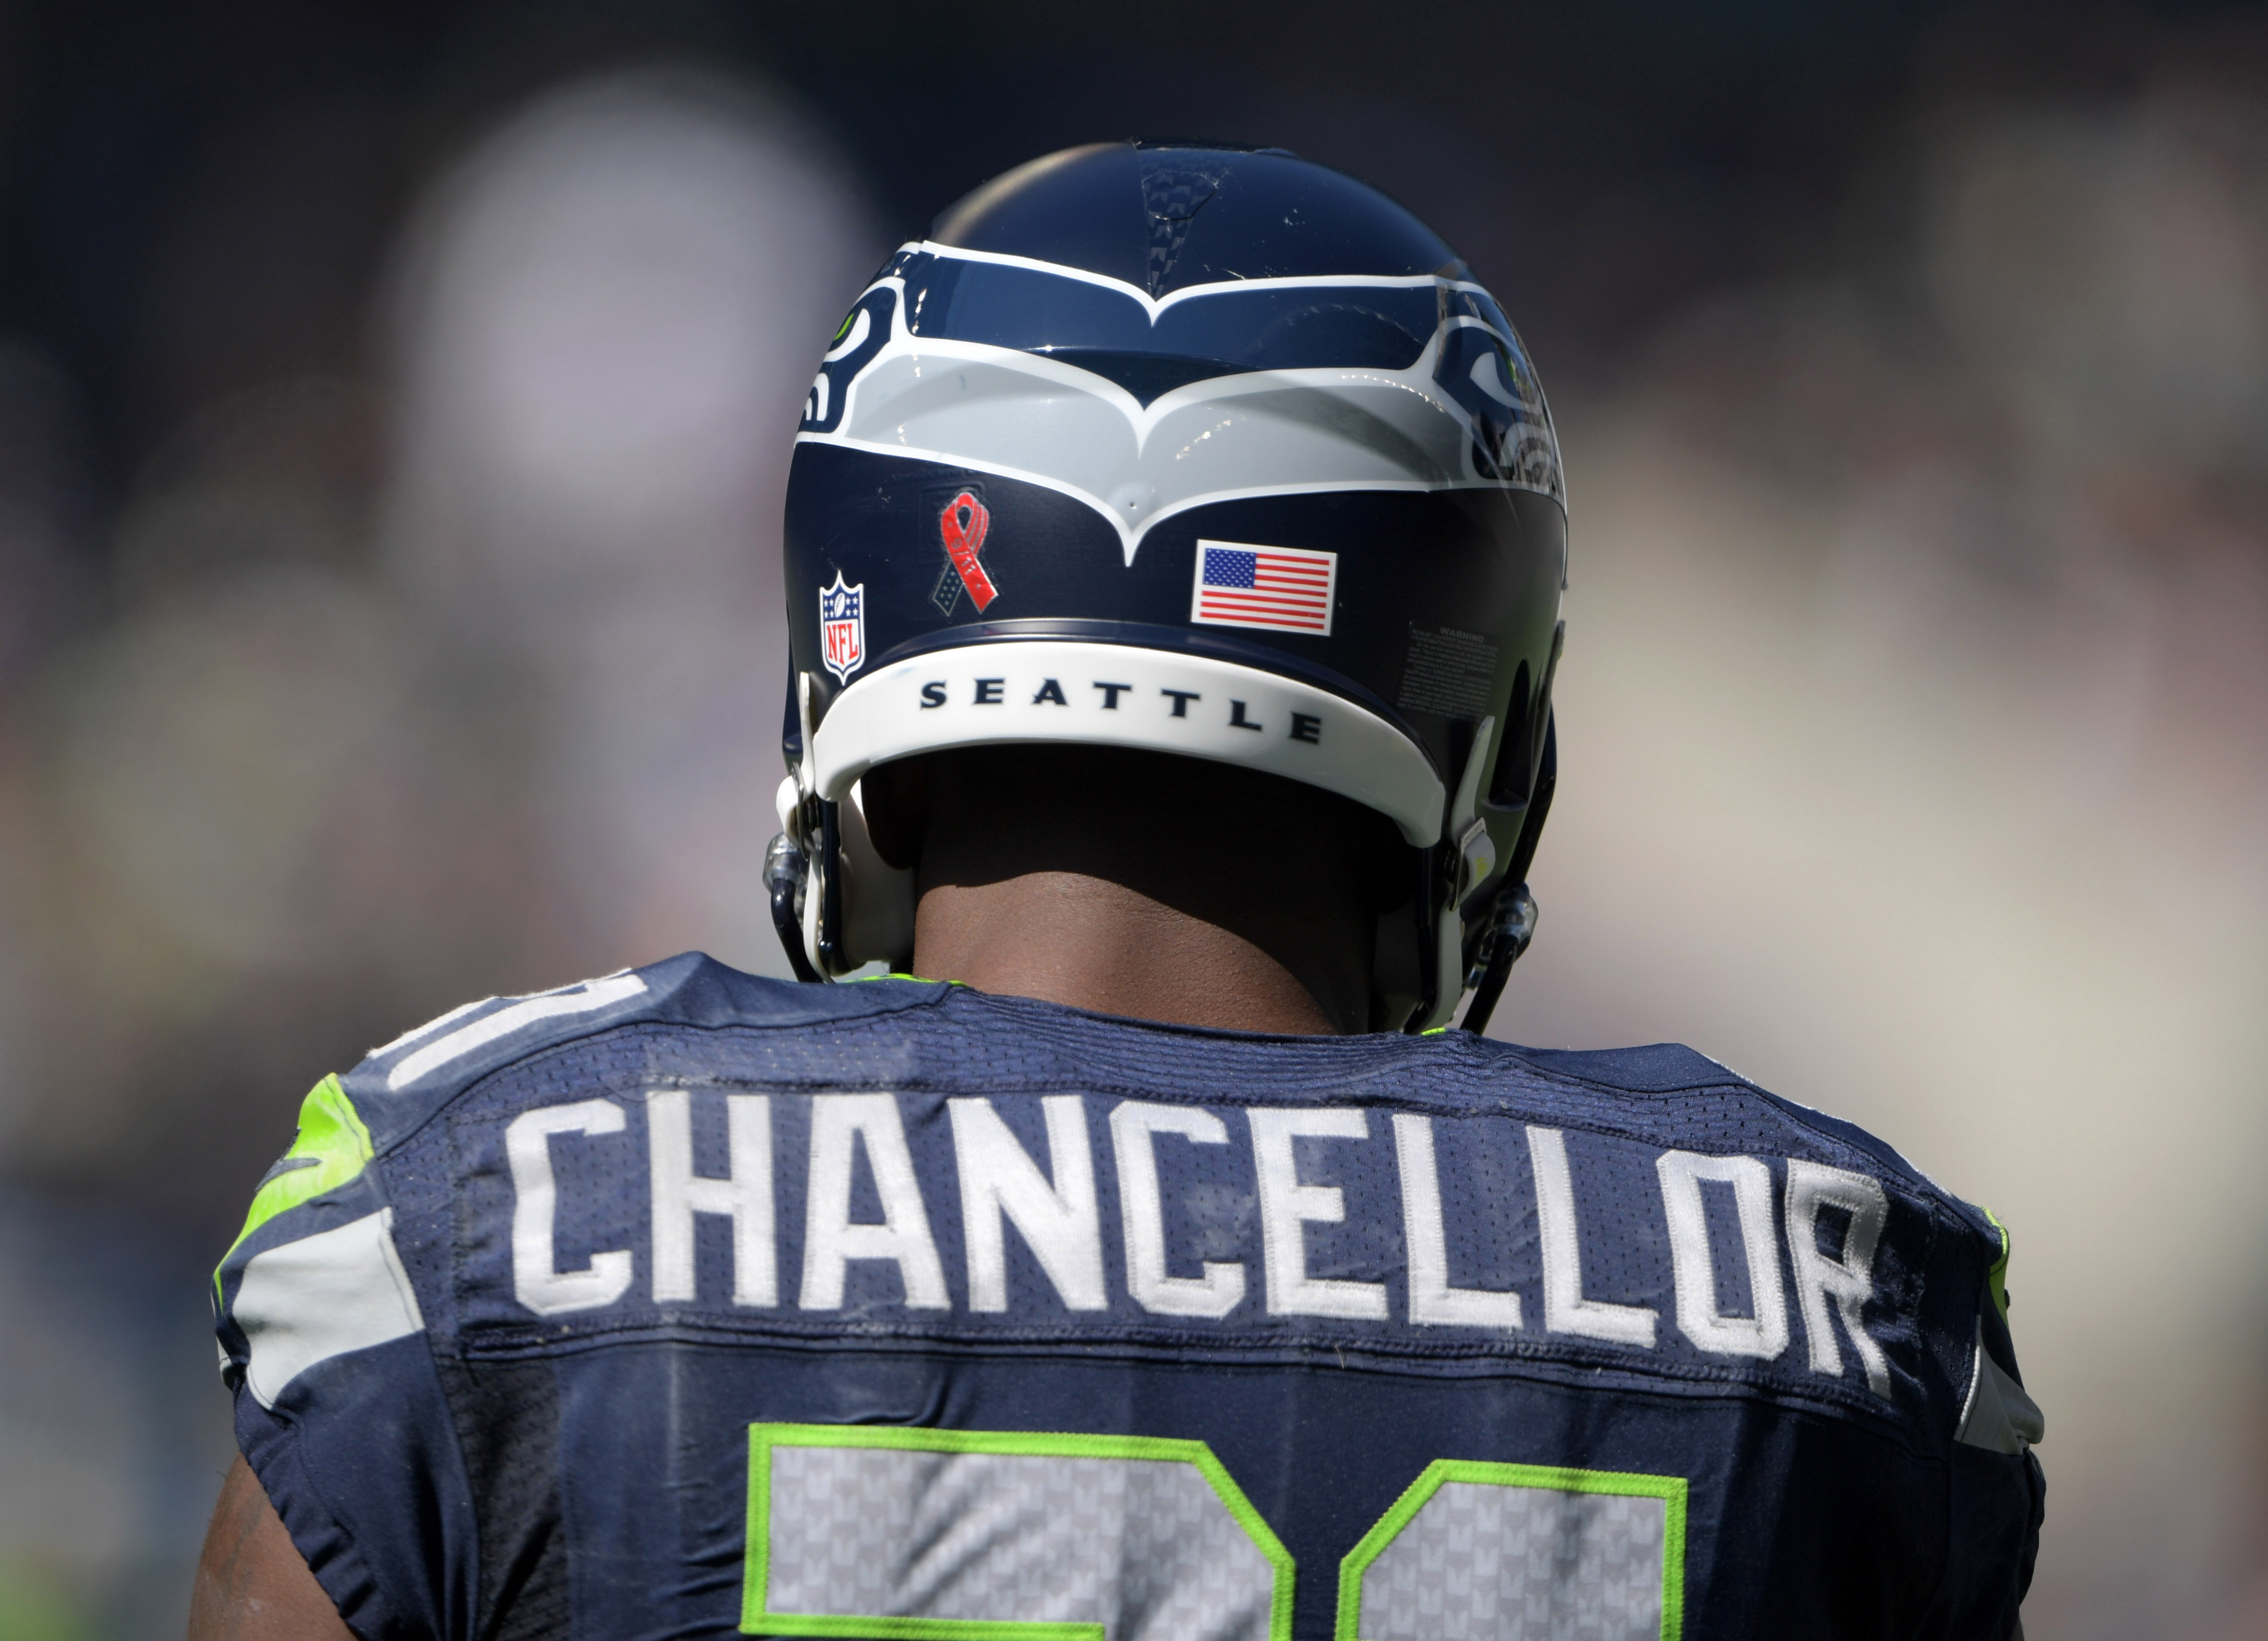 9536972-nfl-miami-dolphins-at-seattle-seahawks